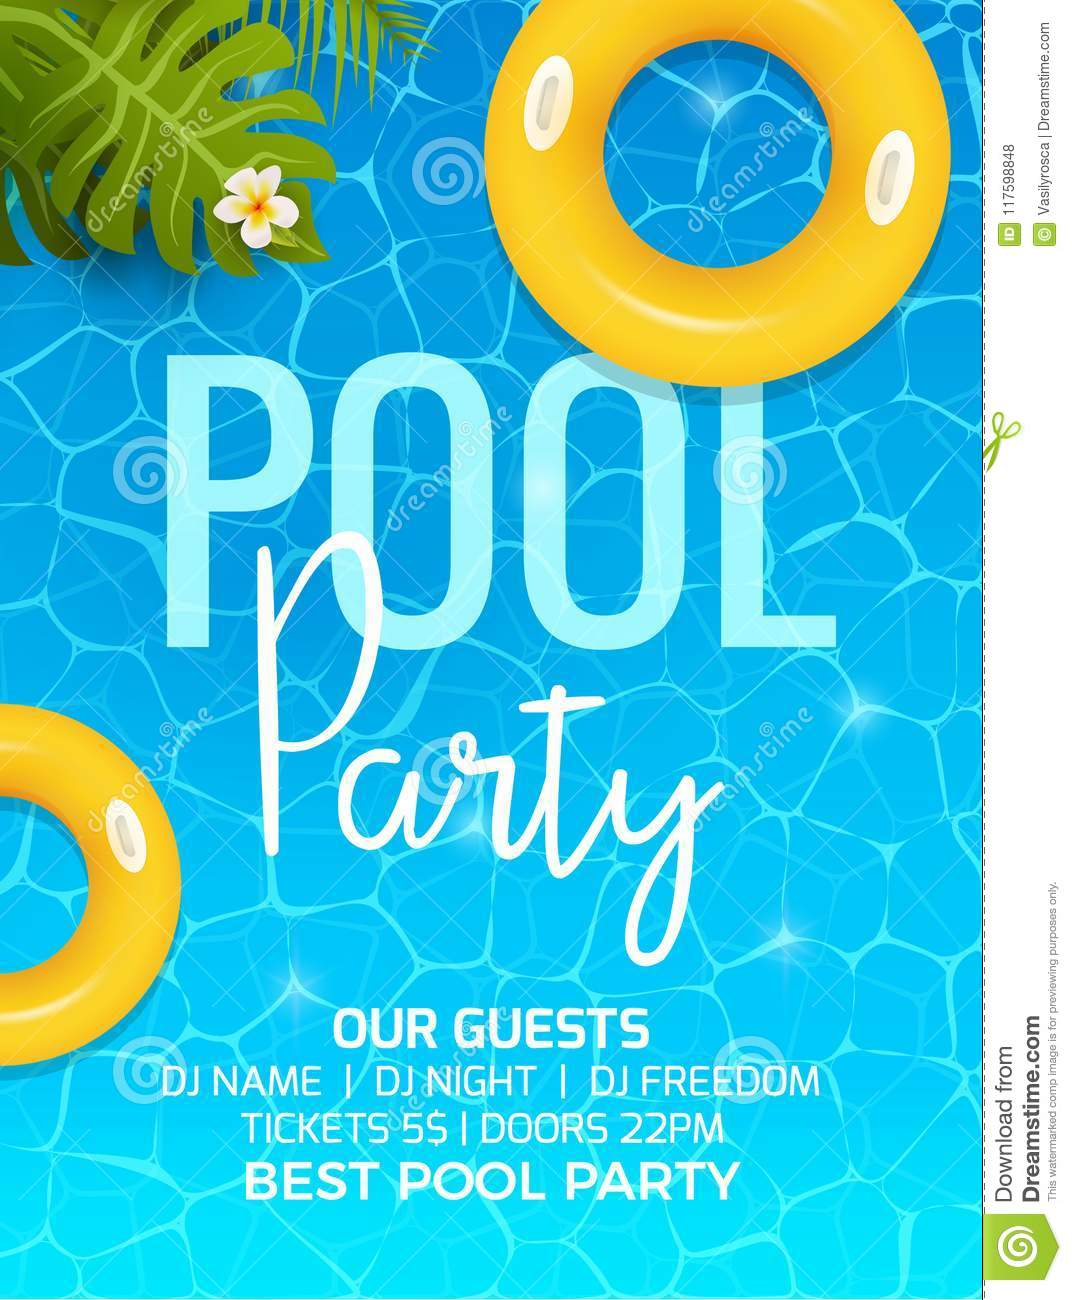 Pool summer party invitation template invitation pool party pool summer party invitation template invitation pool party invitation with palm poster or flyer maxwellsz